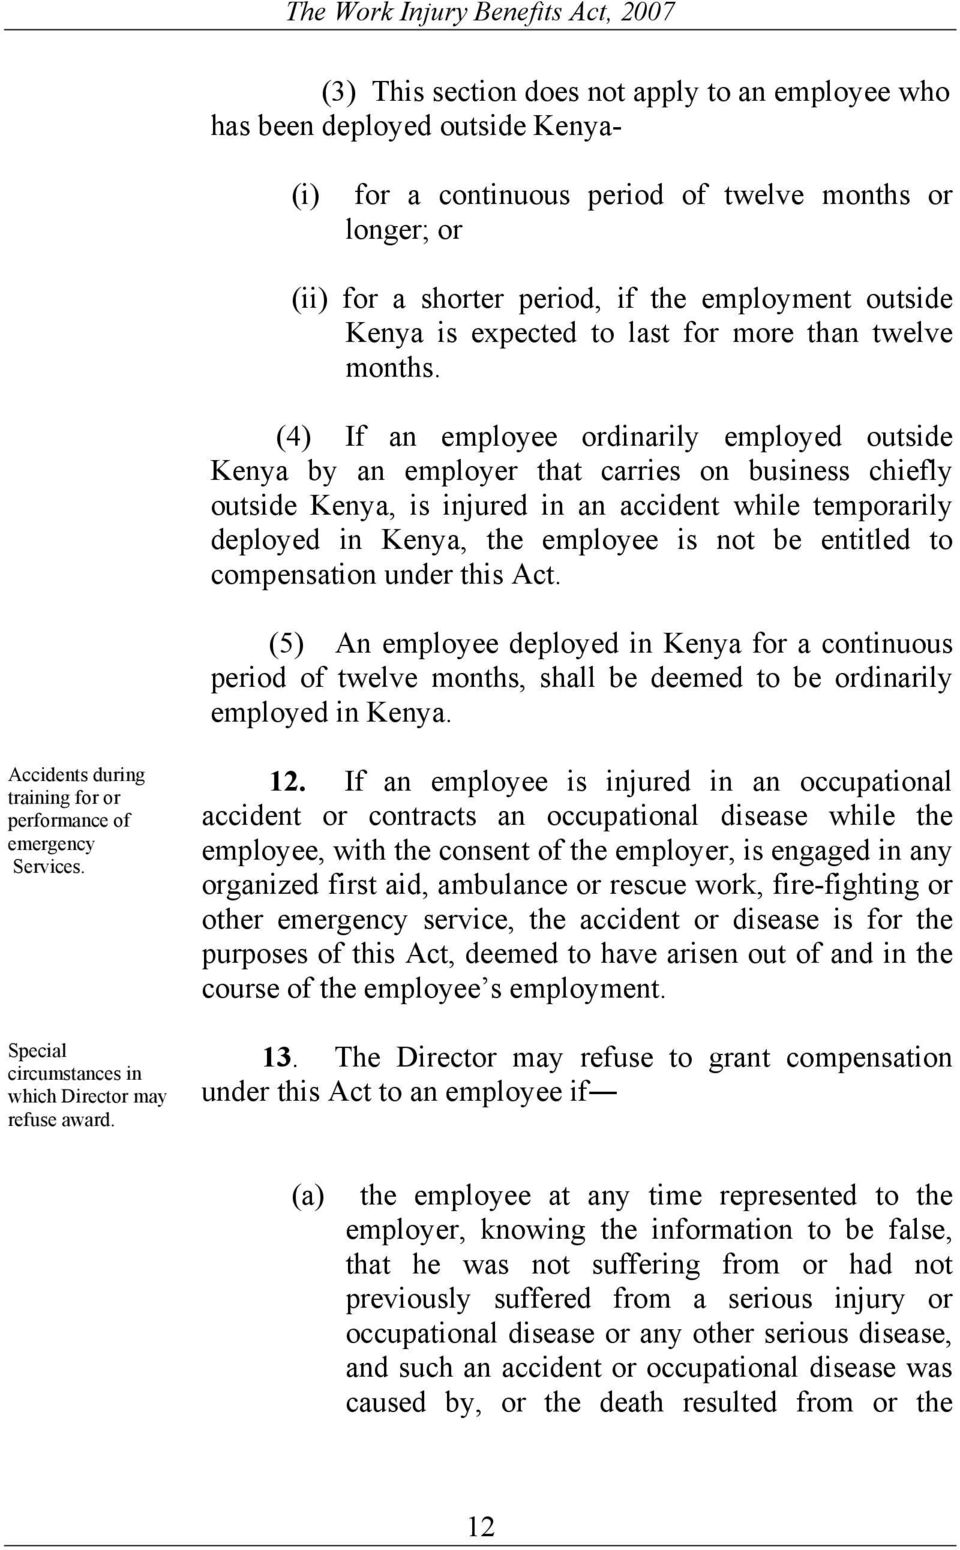 (4) If an employee ordinarily employed outside Kenya by an employer that carries on business chiefly outside Kenya, is injured in an accident while temporarily deployed in Kenya, the employee is not